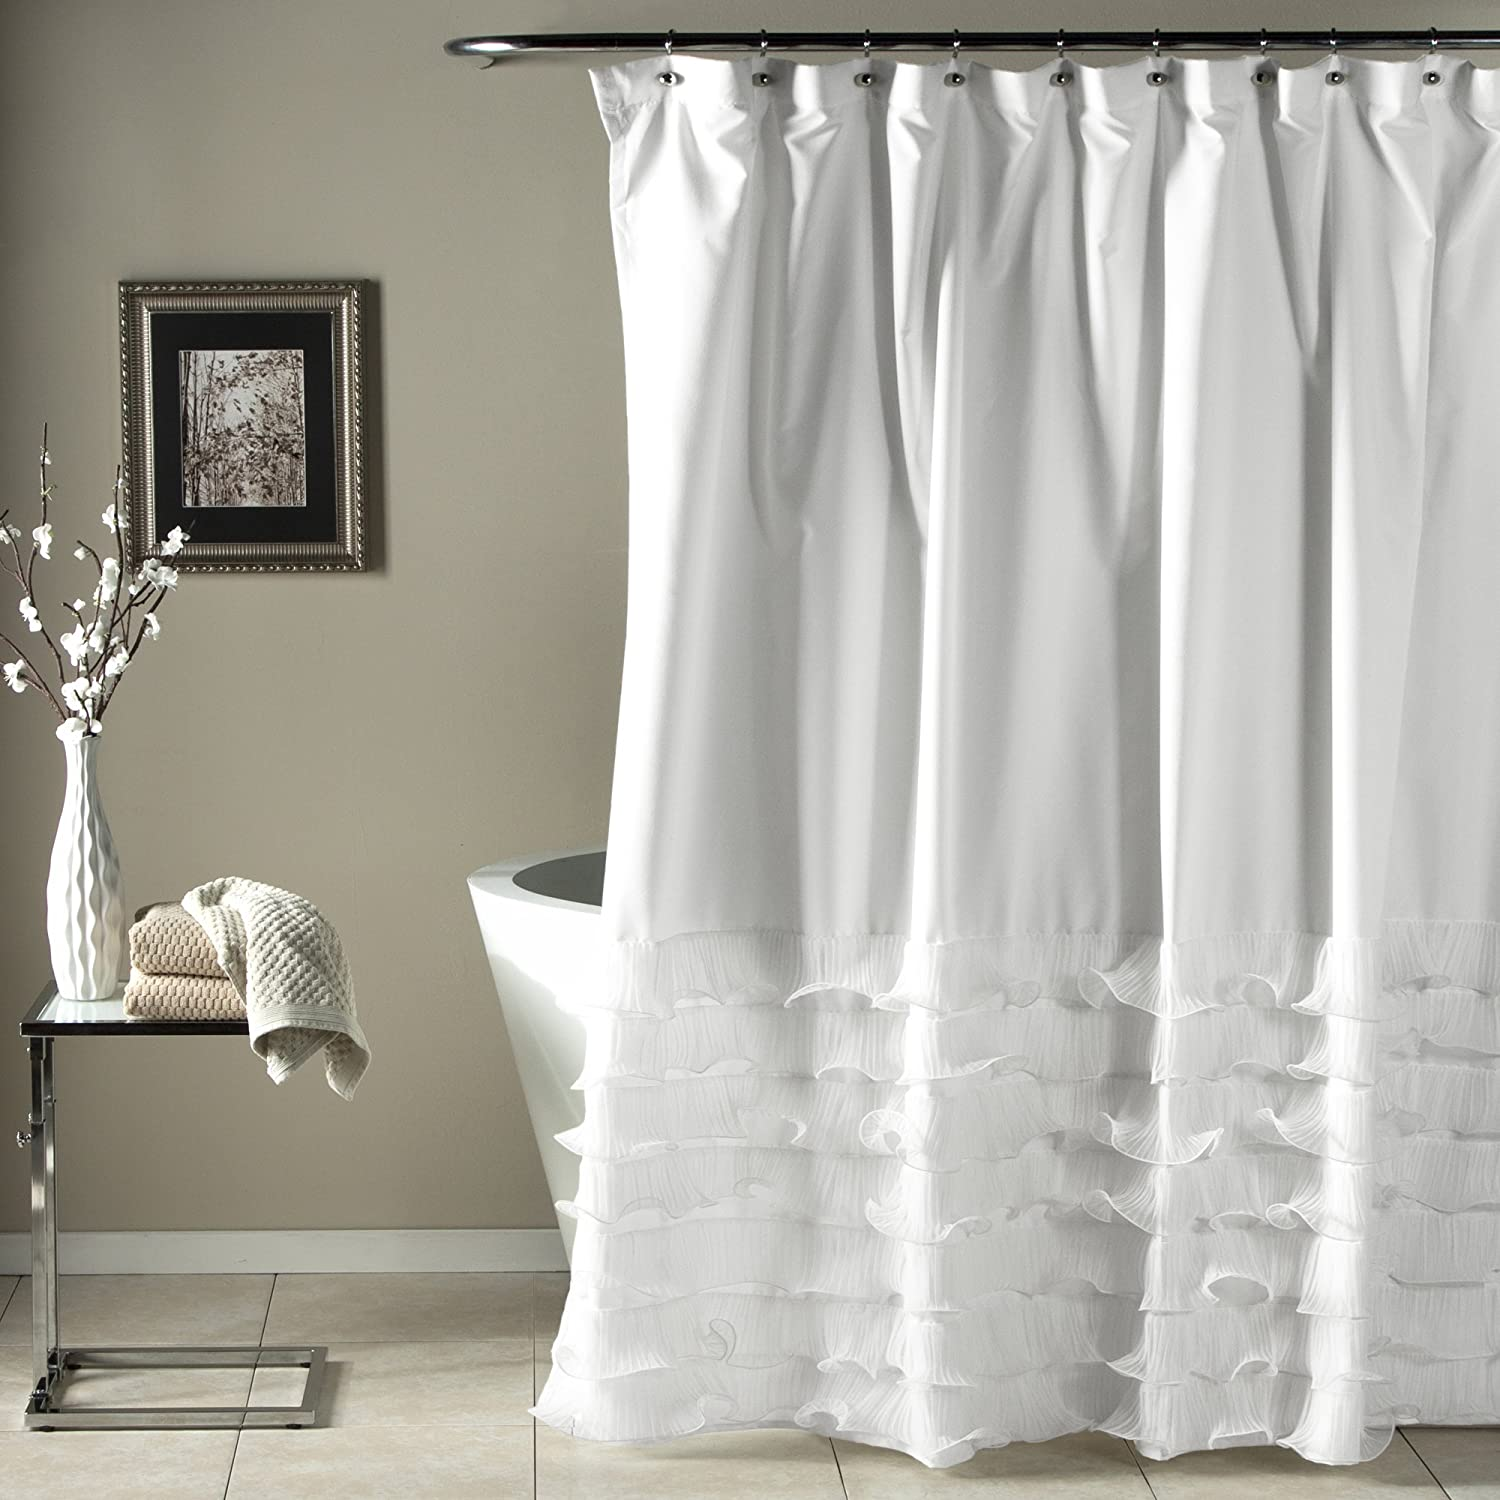 Lush Decor Lake Como Curtains Lush Decor Extra Long Fabric Shower Curtain